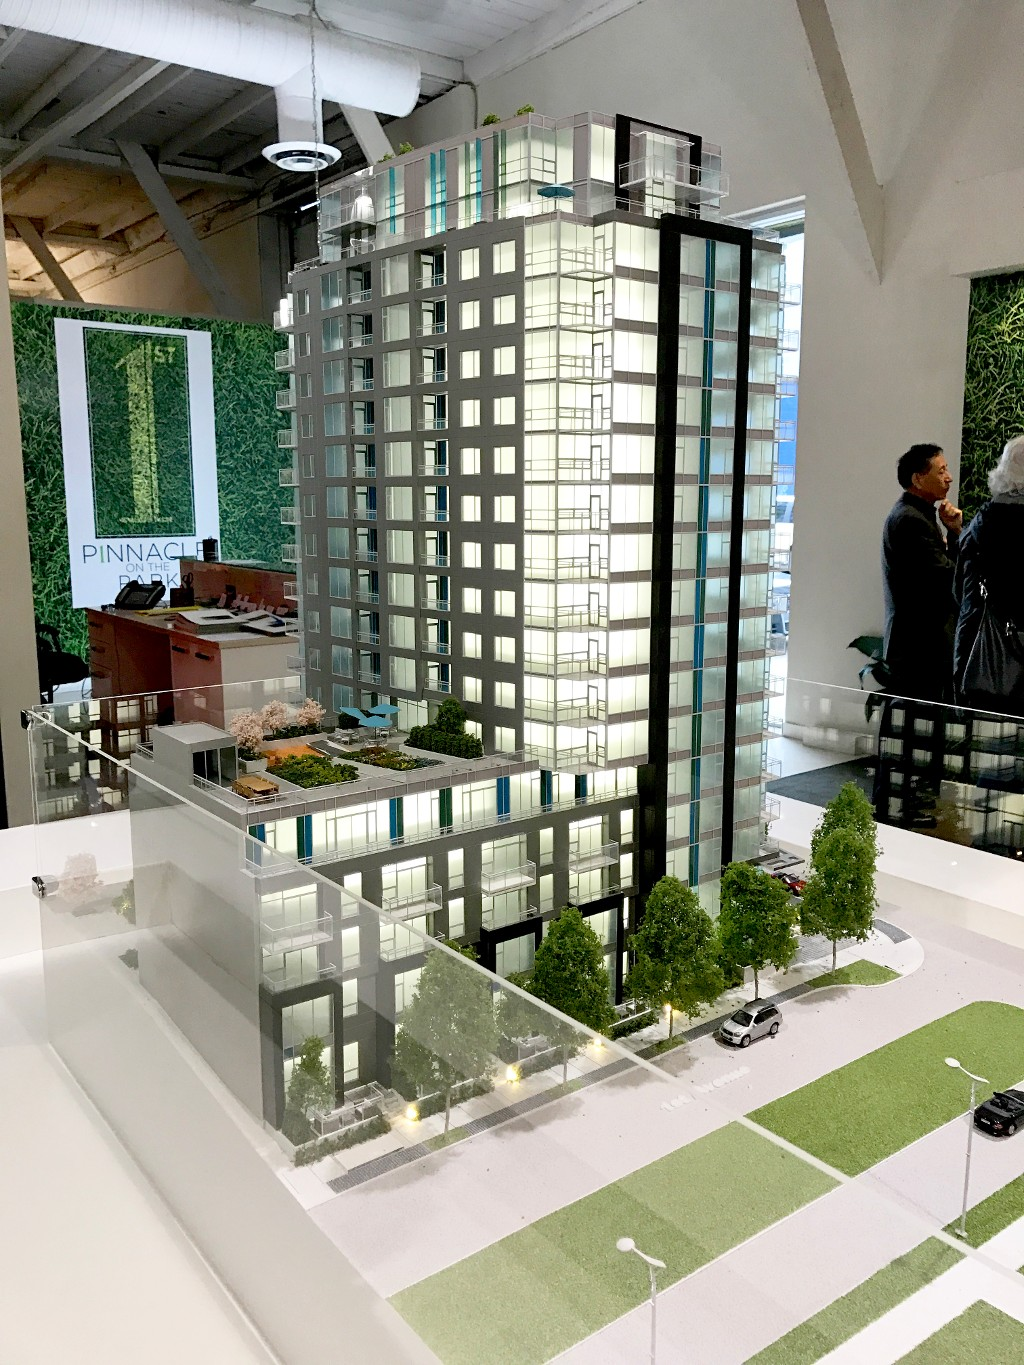 Photo 16: PINNACLE in Vancouver: False Creek Condo for sale (Vancouver West)  : MLS(r) # PRESALE